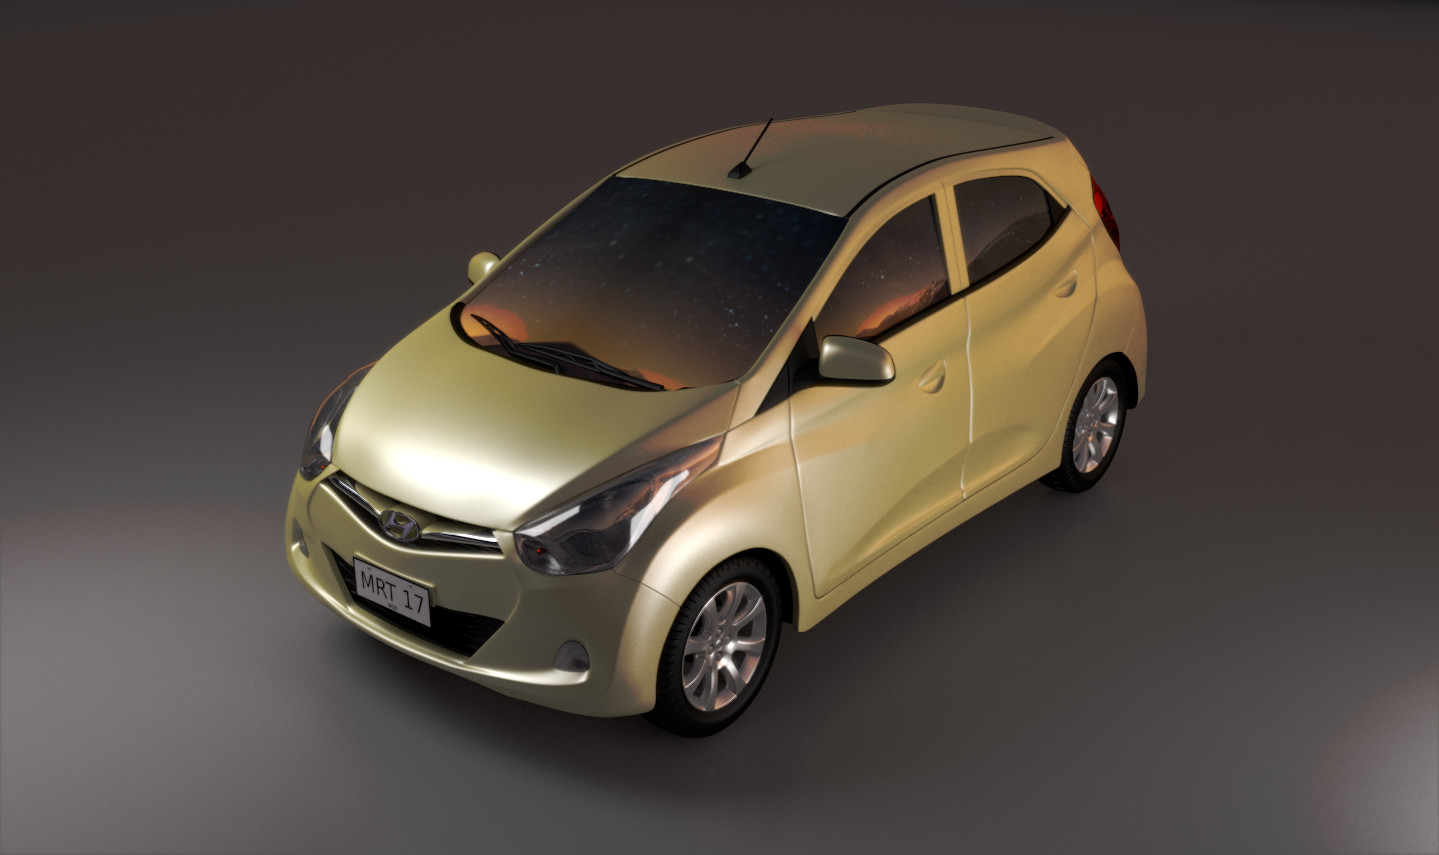 The Hyundai Eon, the car that I own and drive everyday. I thought that the design was awesome so I modeled and rendered it. The Eon is (c) Hyundai Corporation.